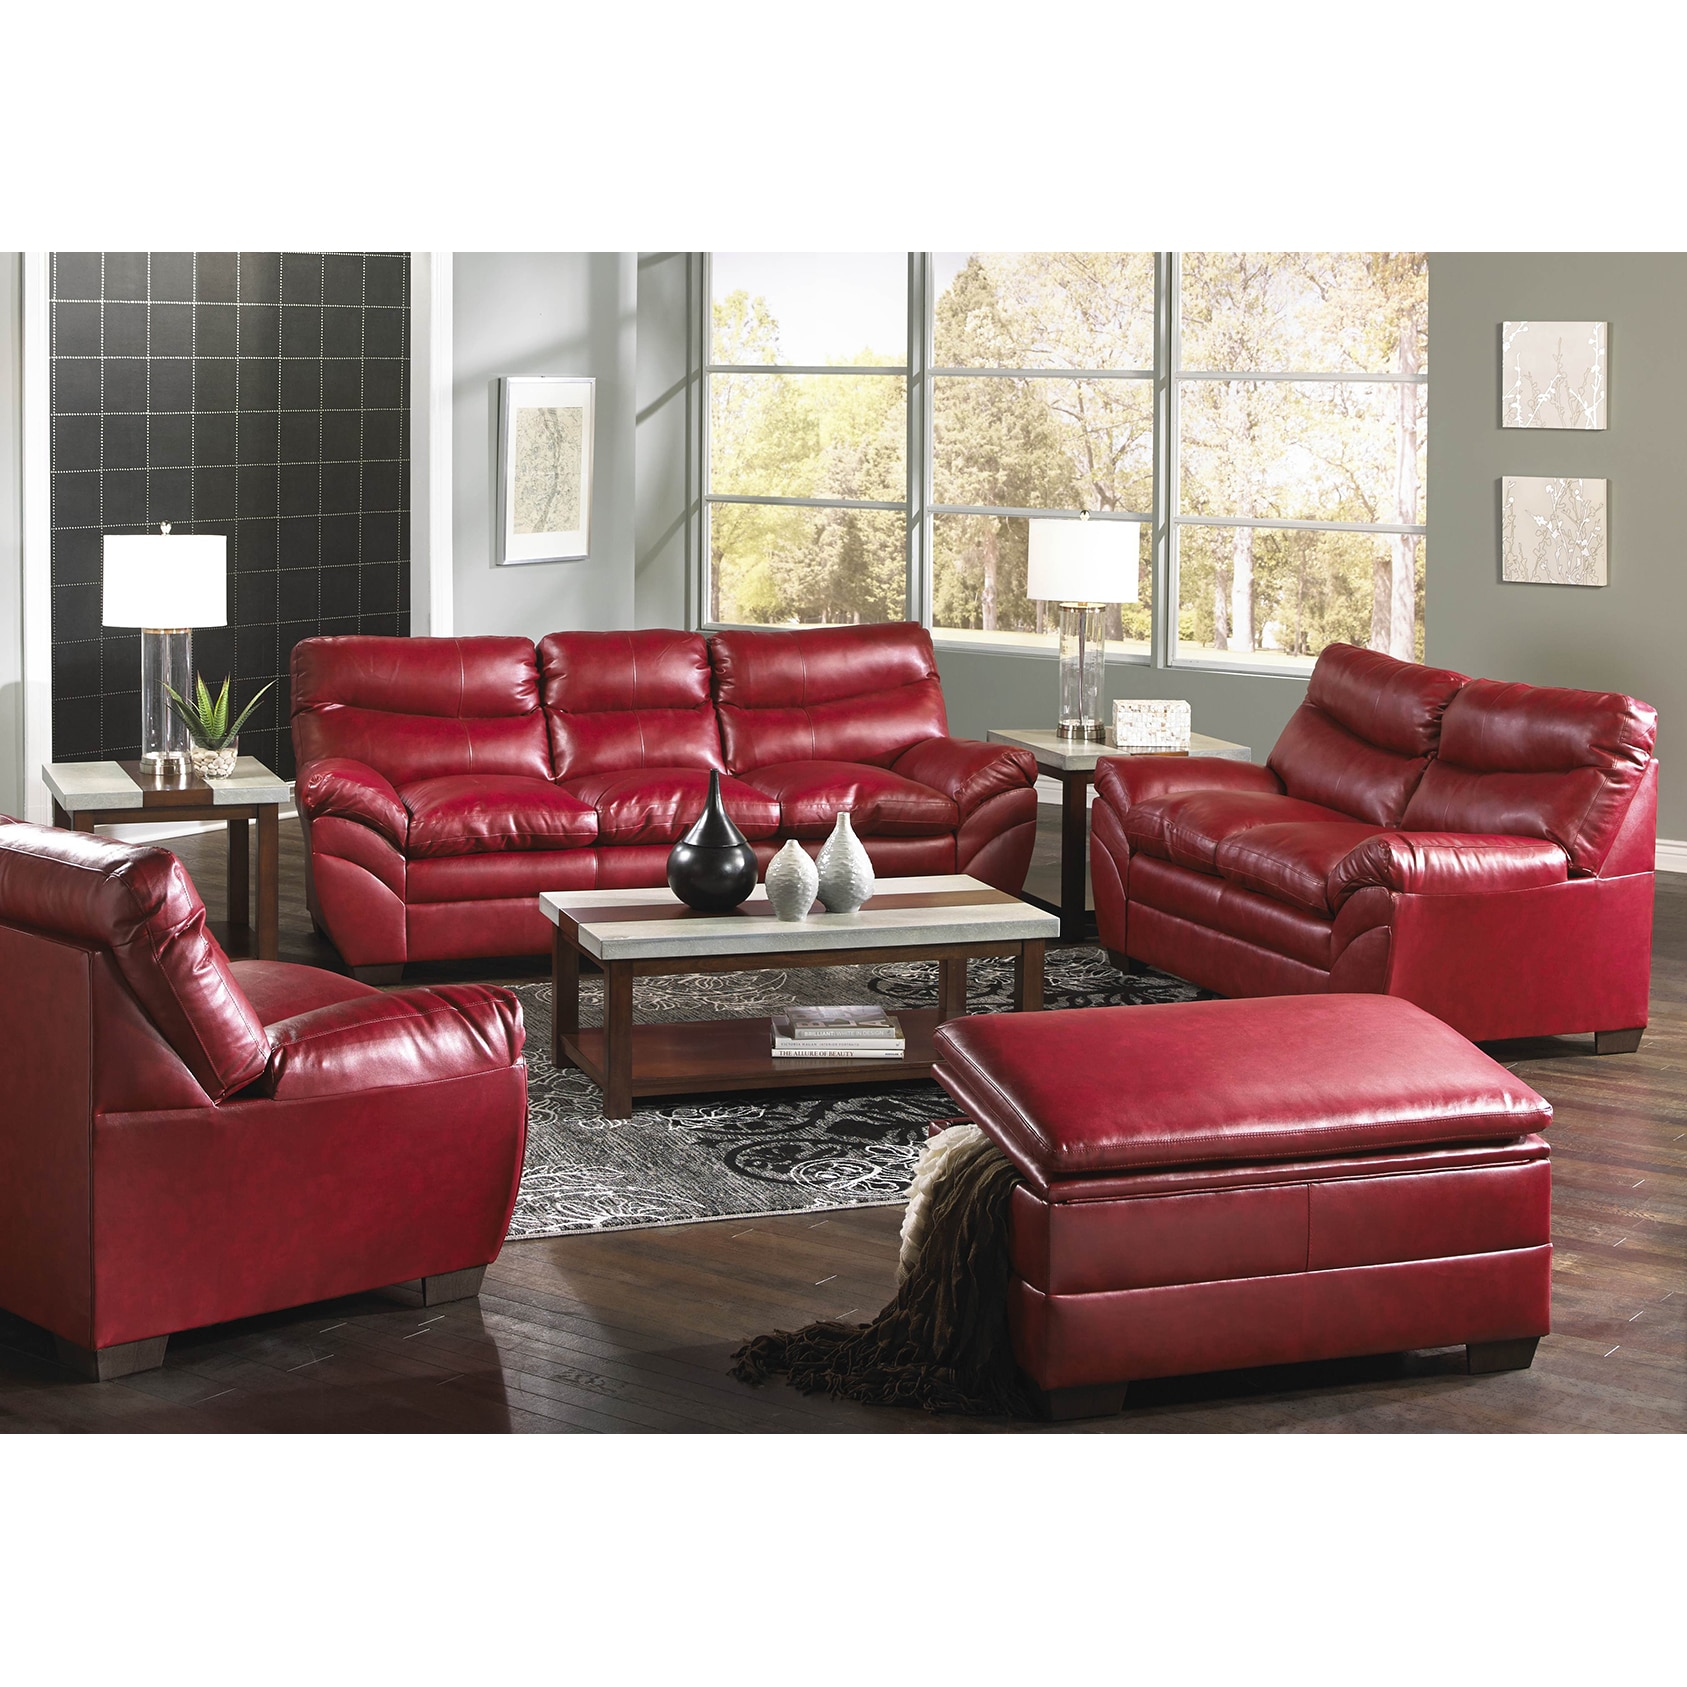 Simmons Upholstery Soho Cardinal Bonded Leather Sofa Free  ~ Simmons Leather Sofa Review